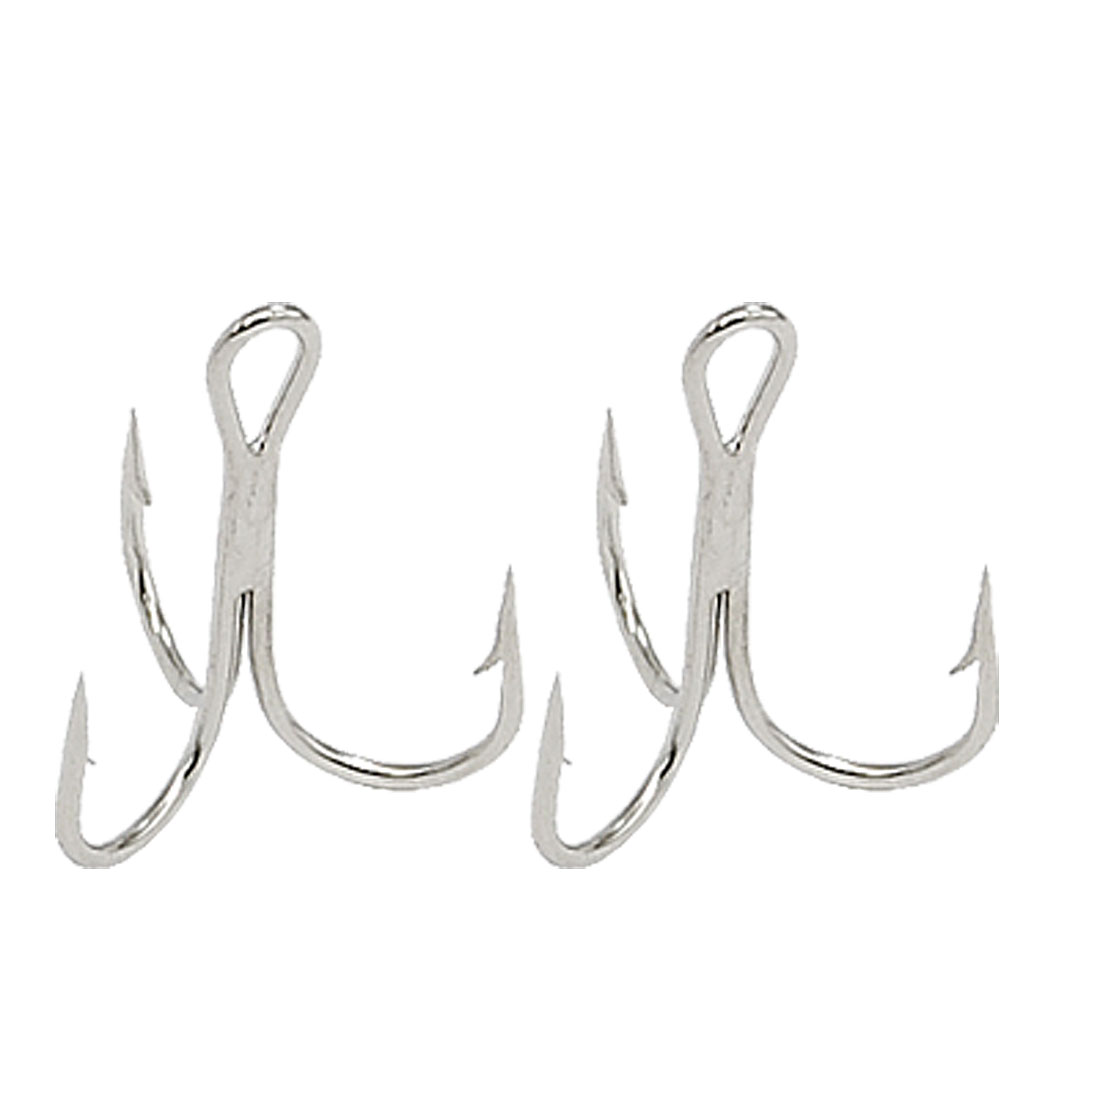 2 PCS Silvery Fresh water Triple Fishing Hook